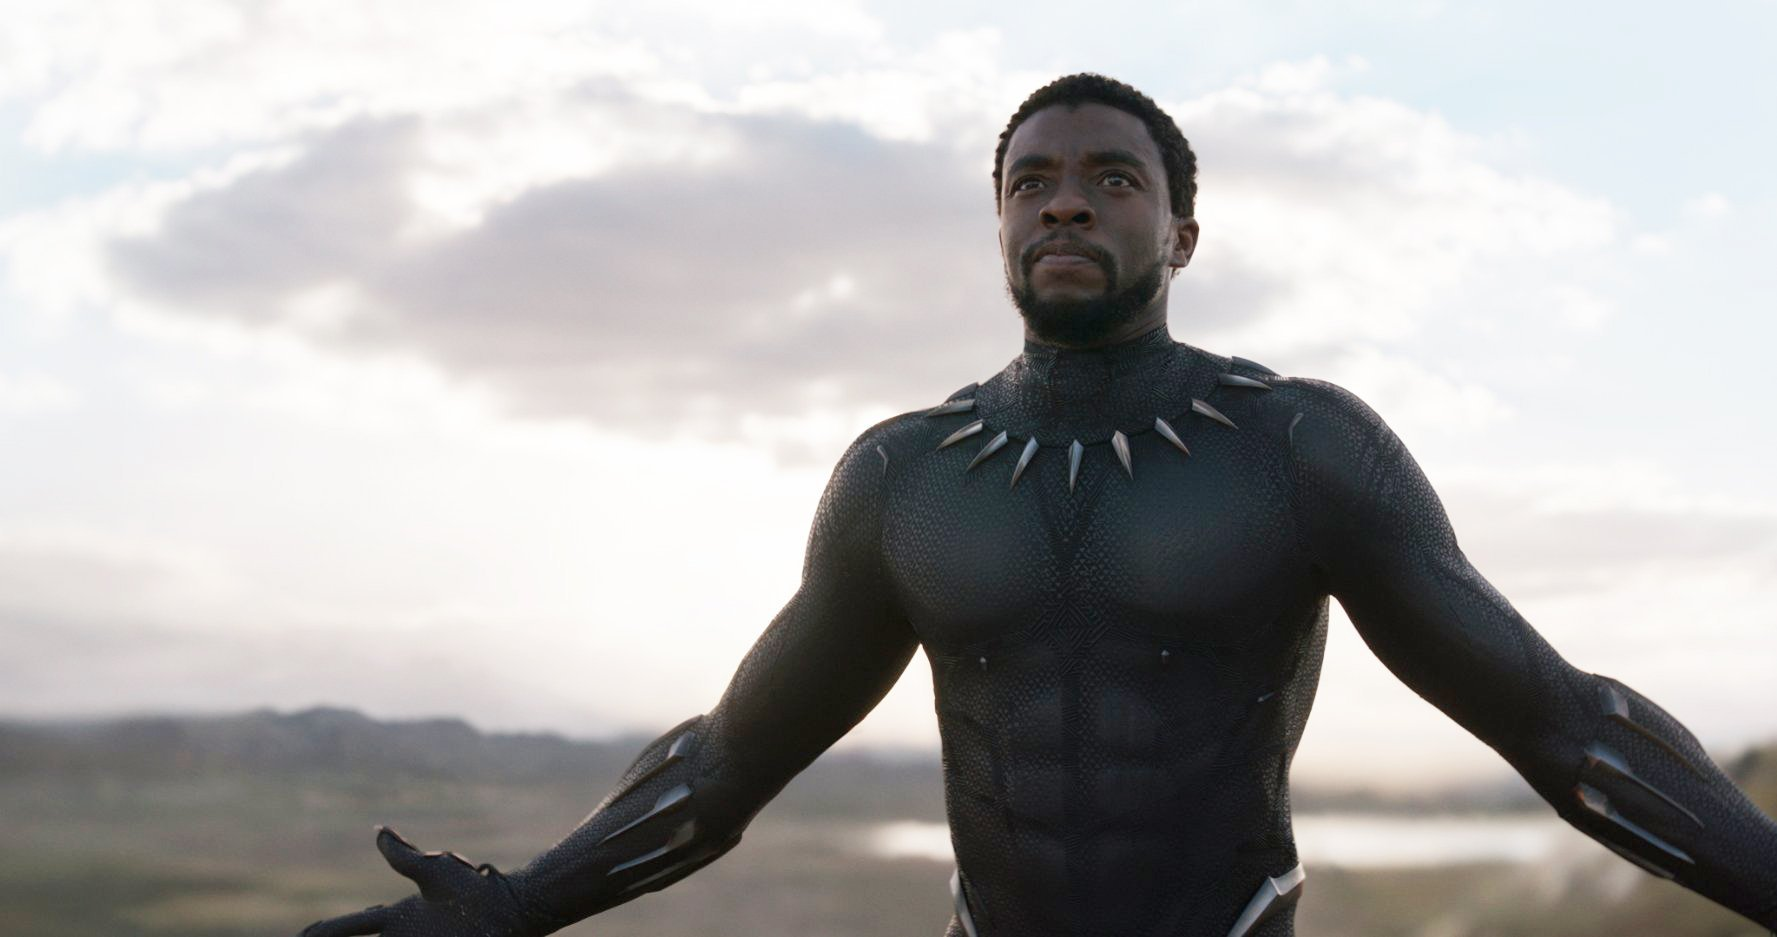 'Black Panther' sequel release date announced